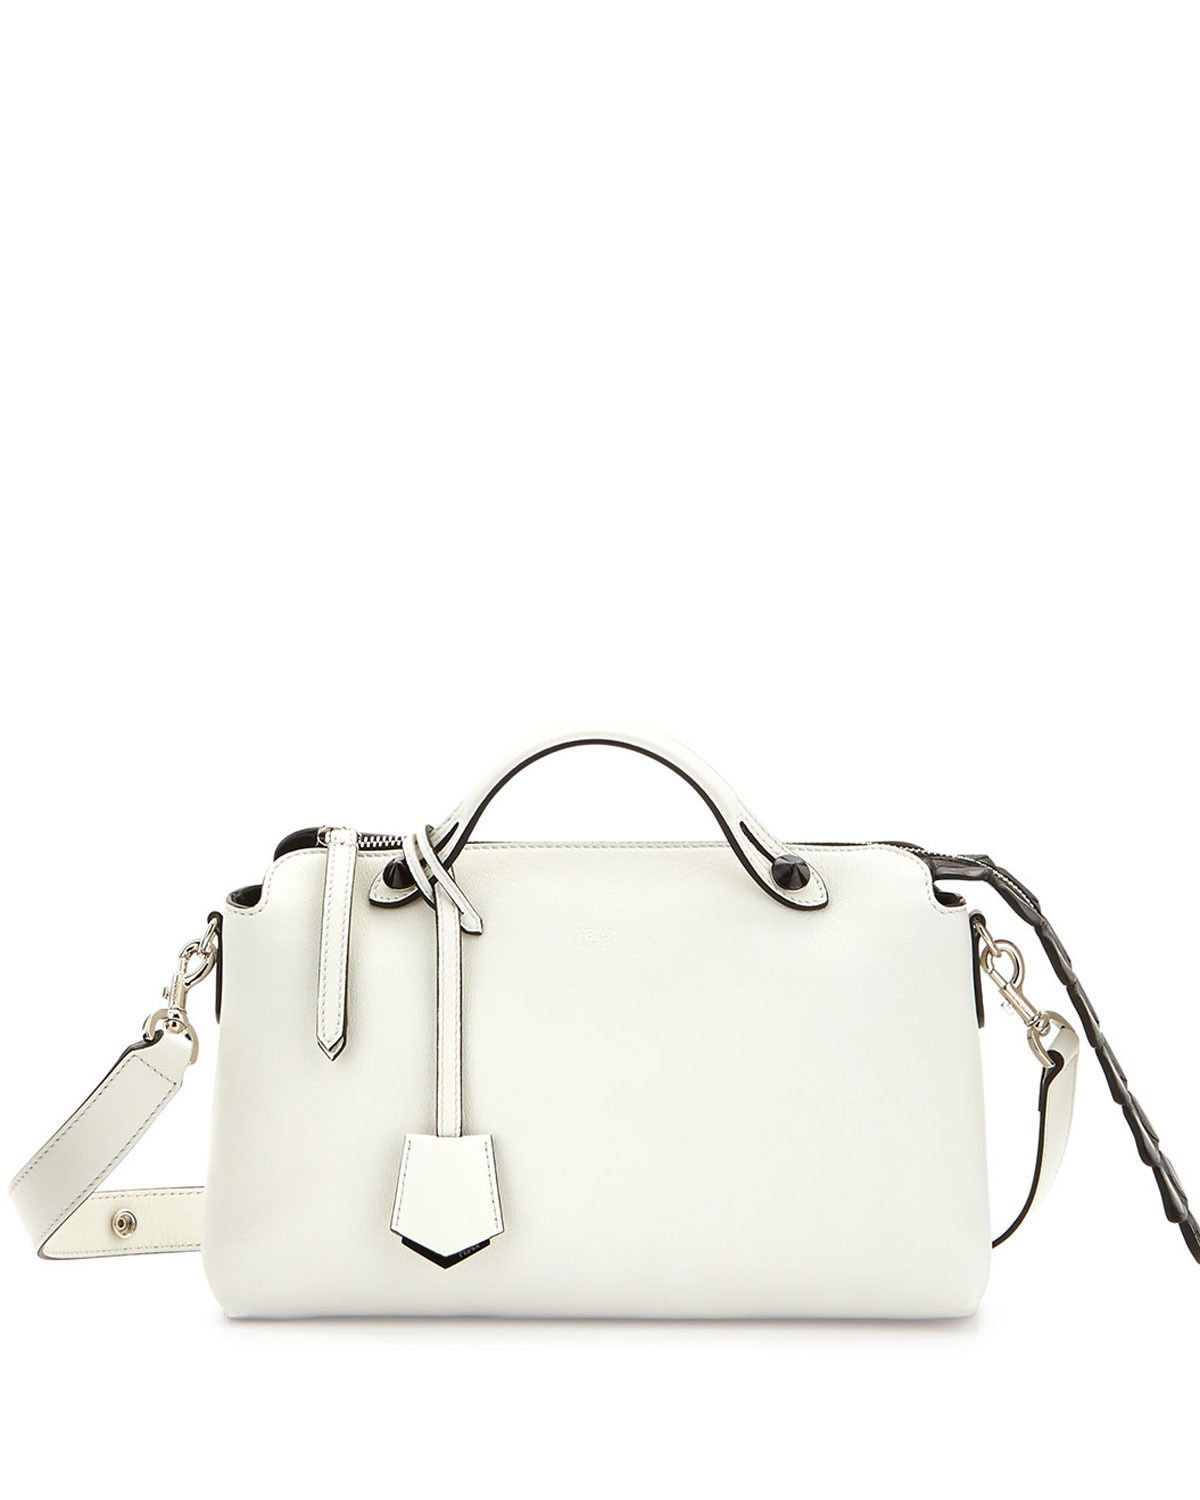 52c9883268b4b 2017 new Fendi By The Way Small Croc Satchel White on sale online ...